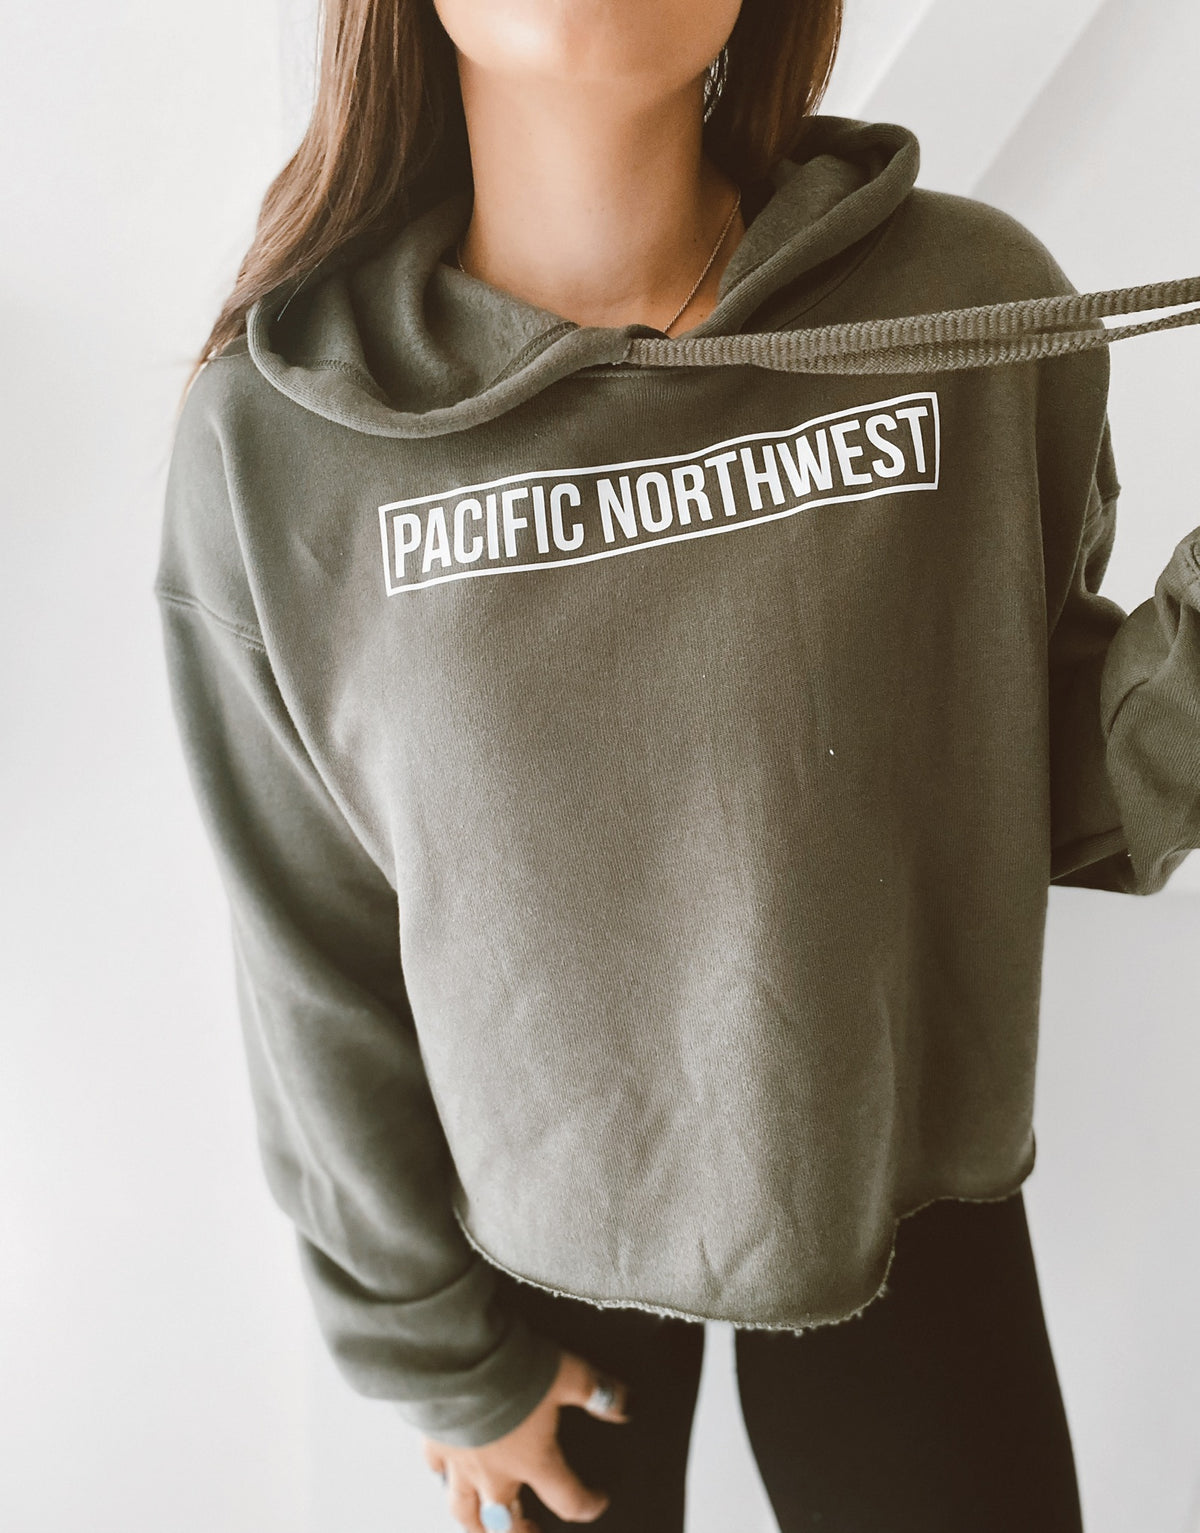 Pacific Northwest Crop